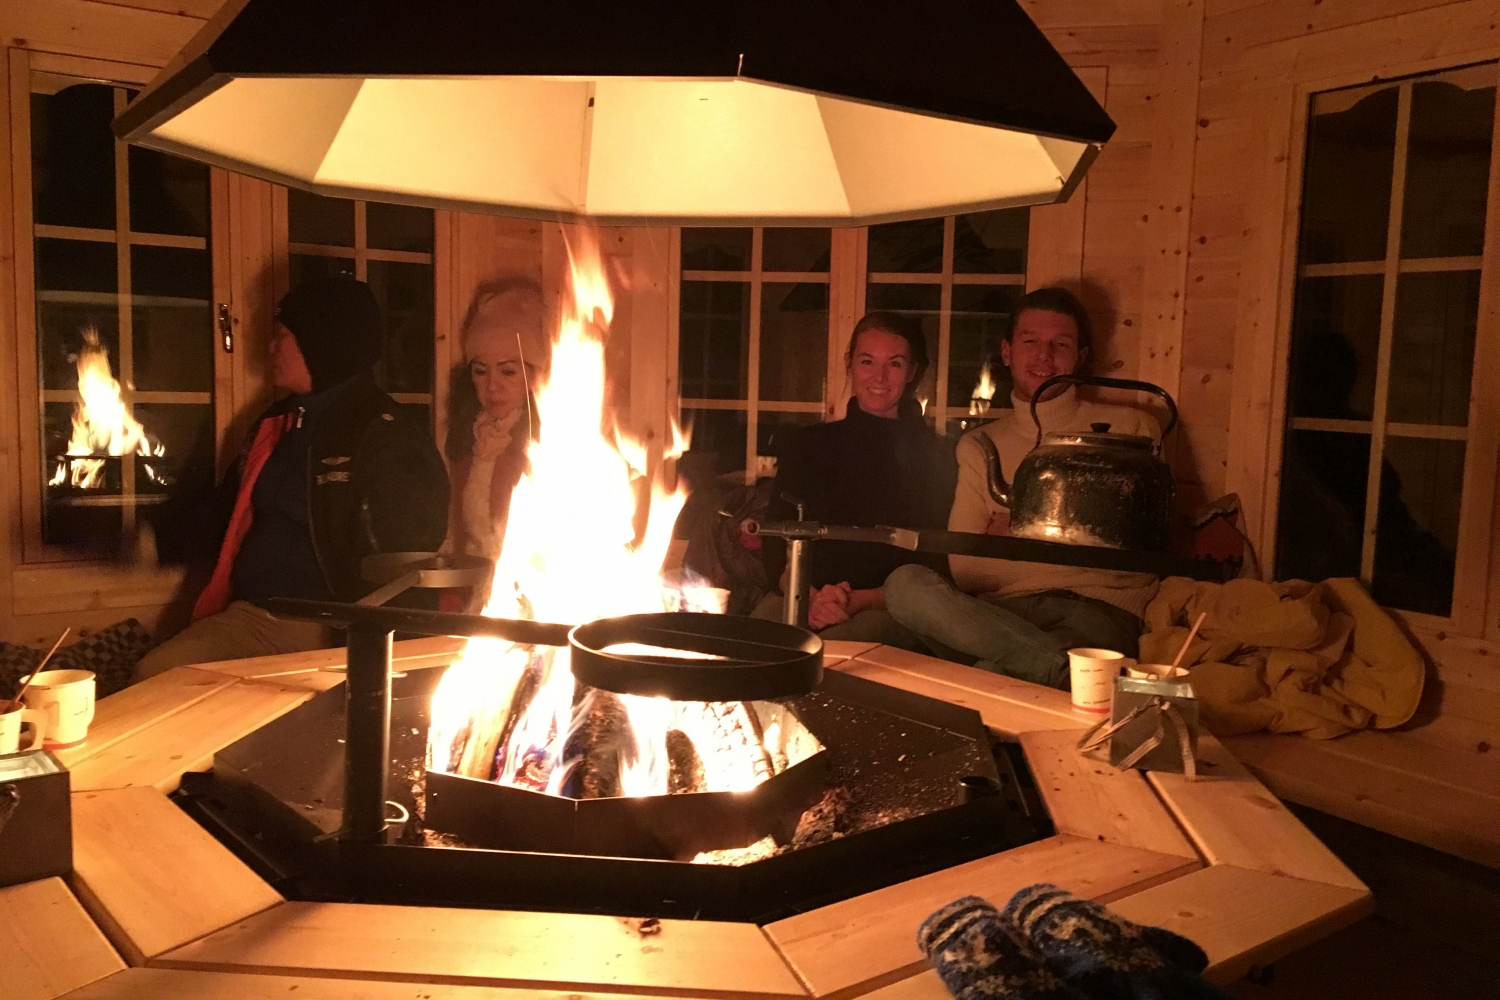 Persons sitting inside a hut with a bonfire in the middle